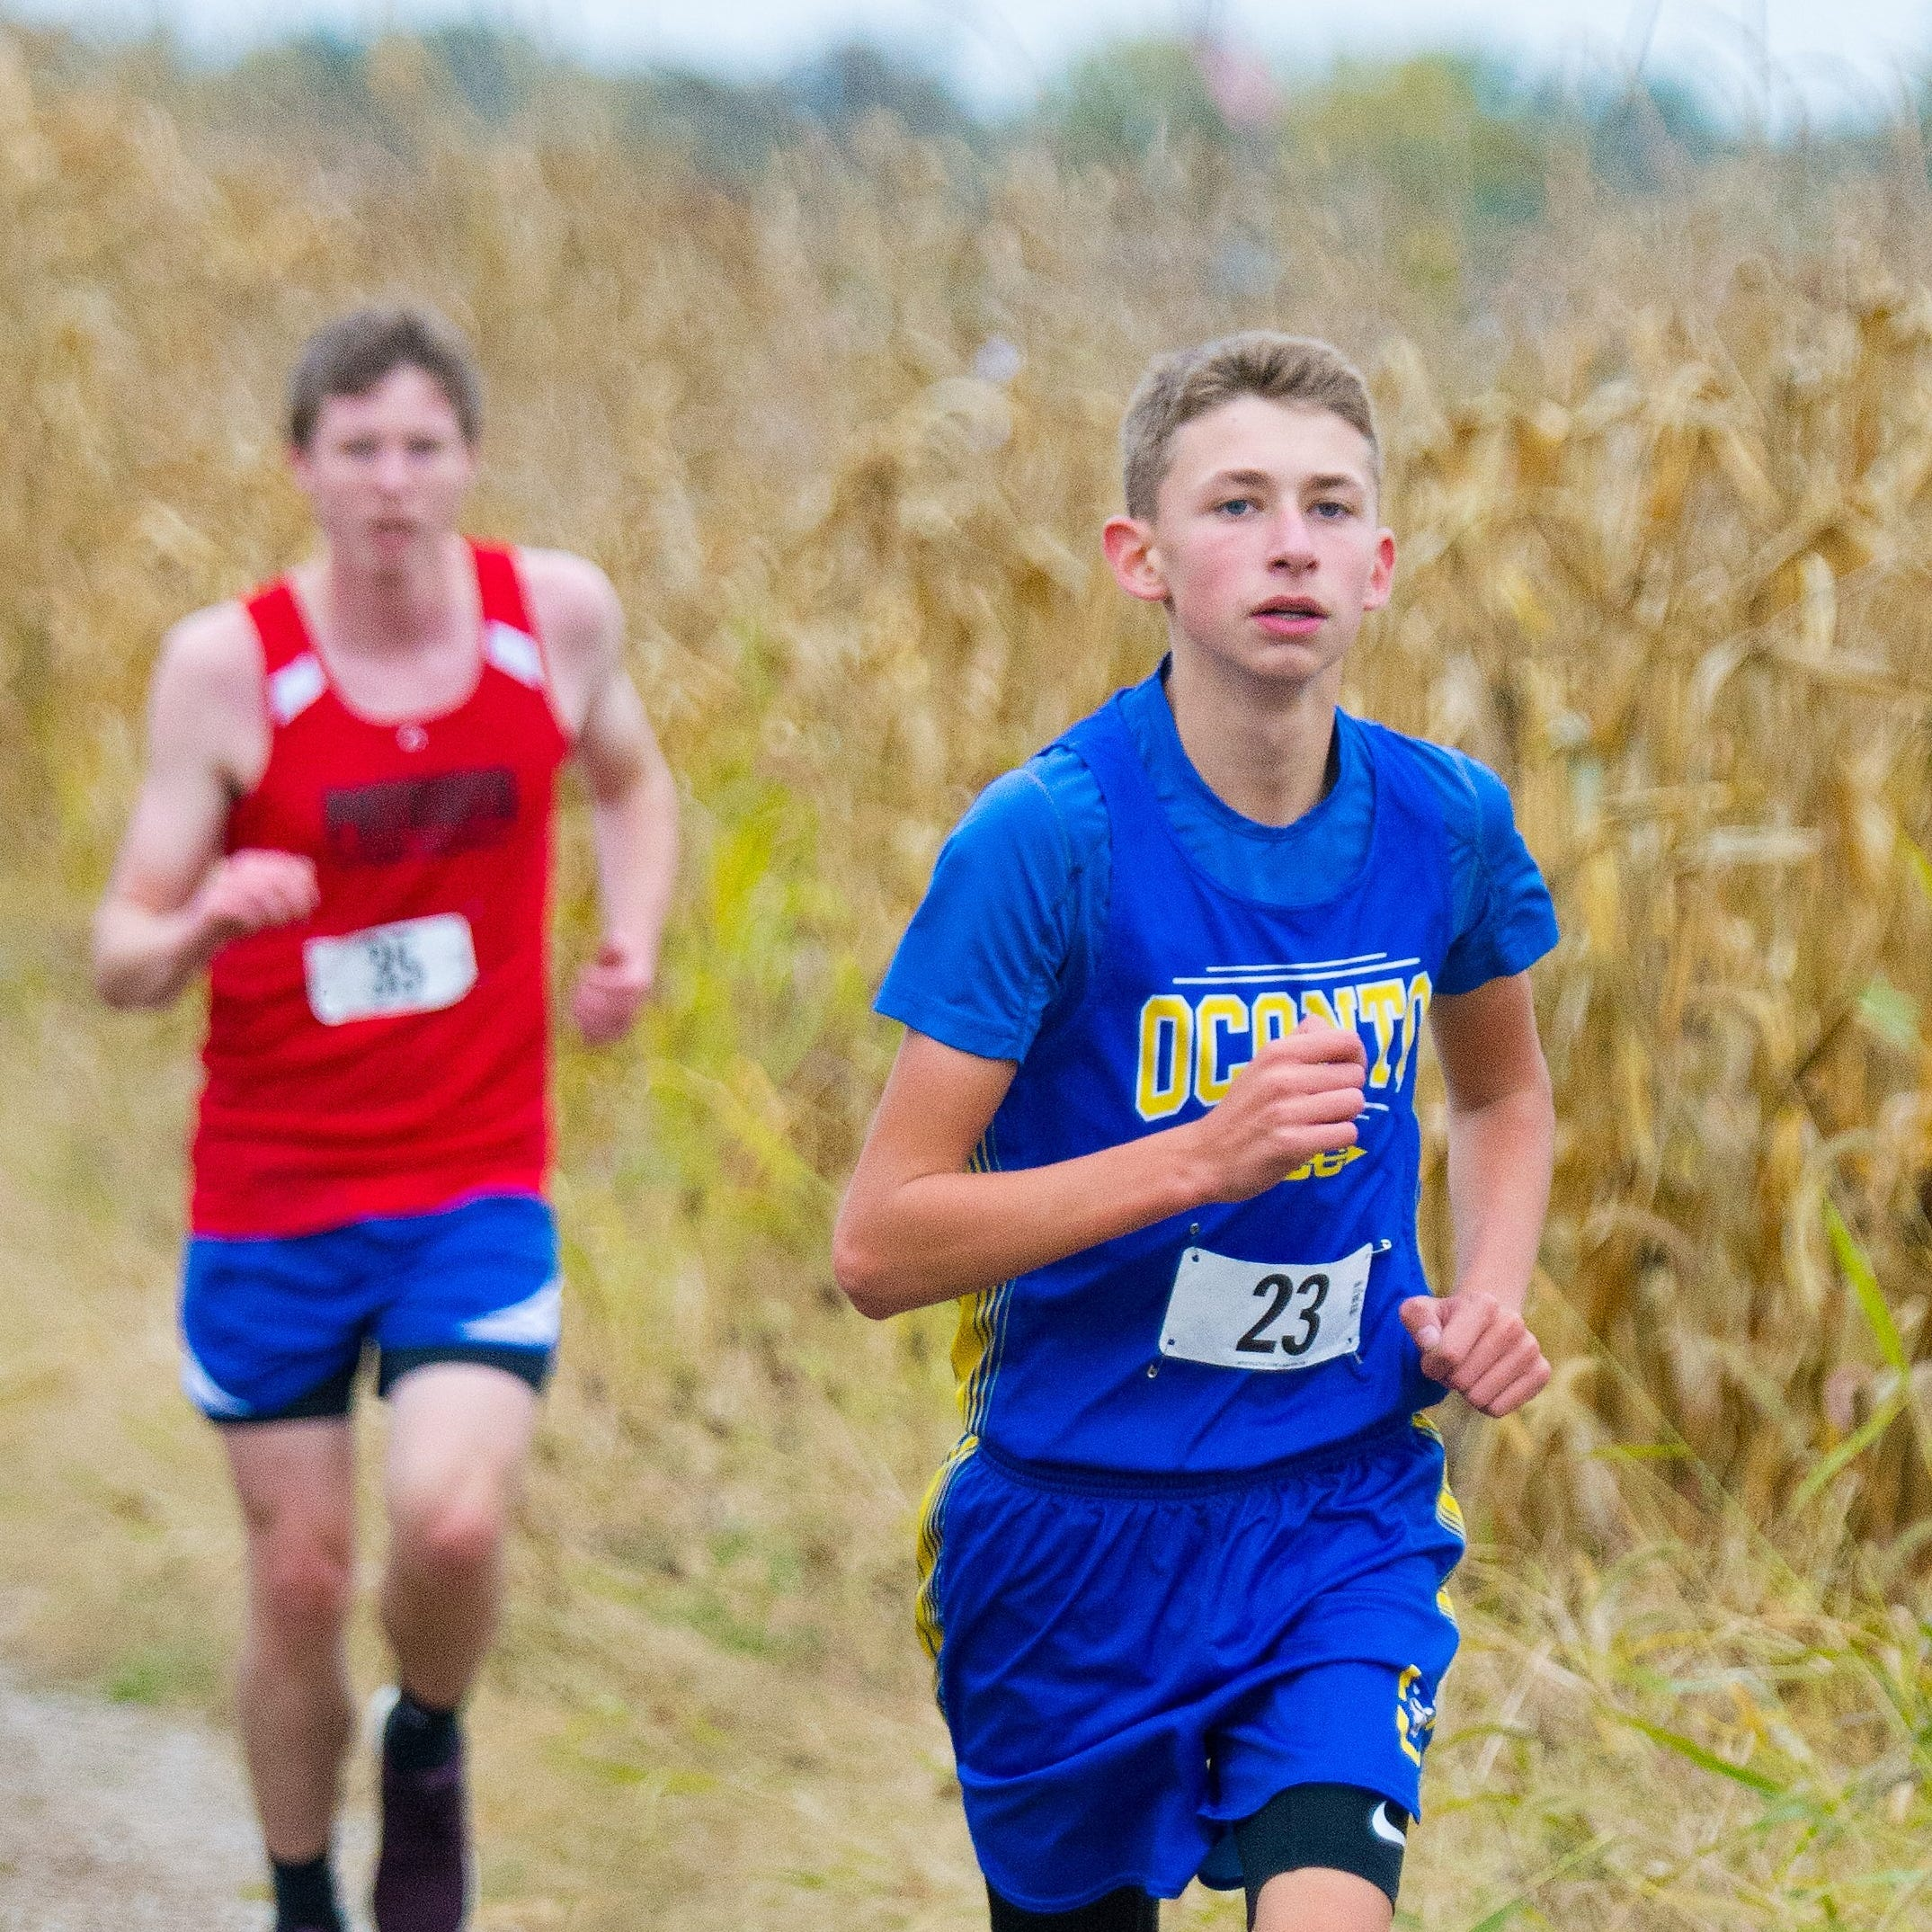 Oconto runner claims first, fourth in cross country meets